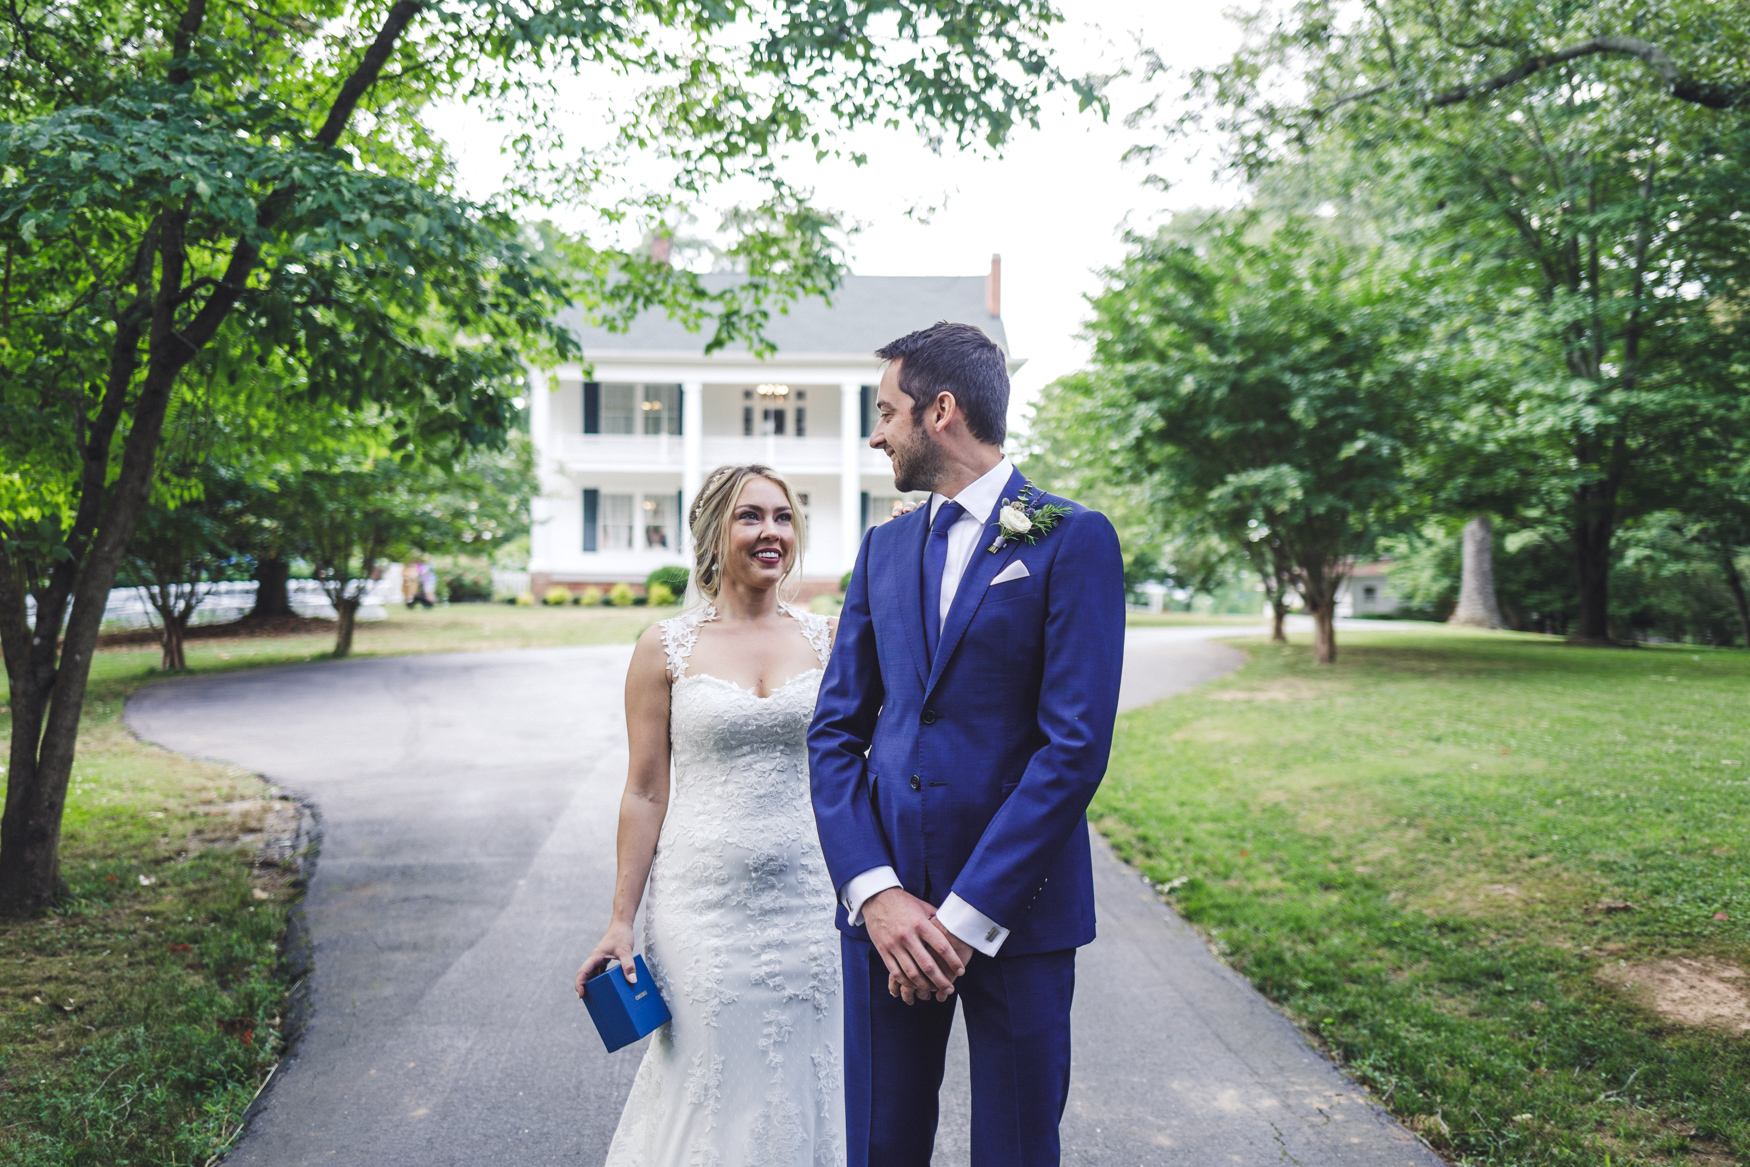 ogletree estates wedding, destination wedding photographer, wedding photographer georgia, charlotte wedding photographer, nyc wedding photographer,  first look photos